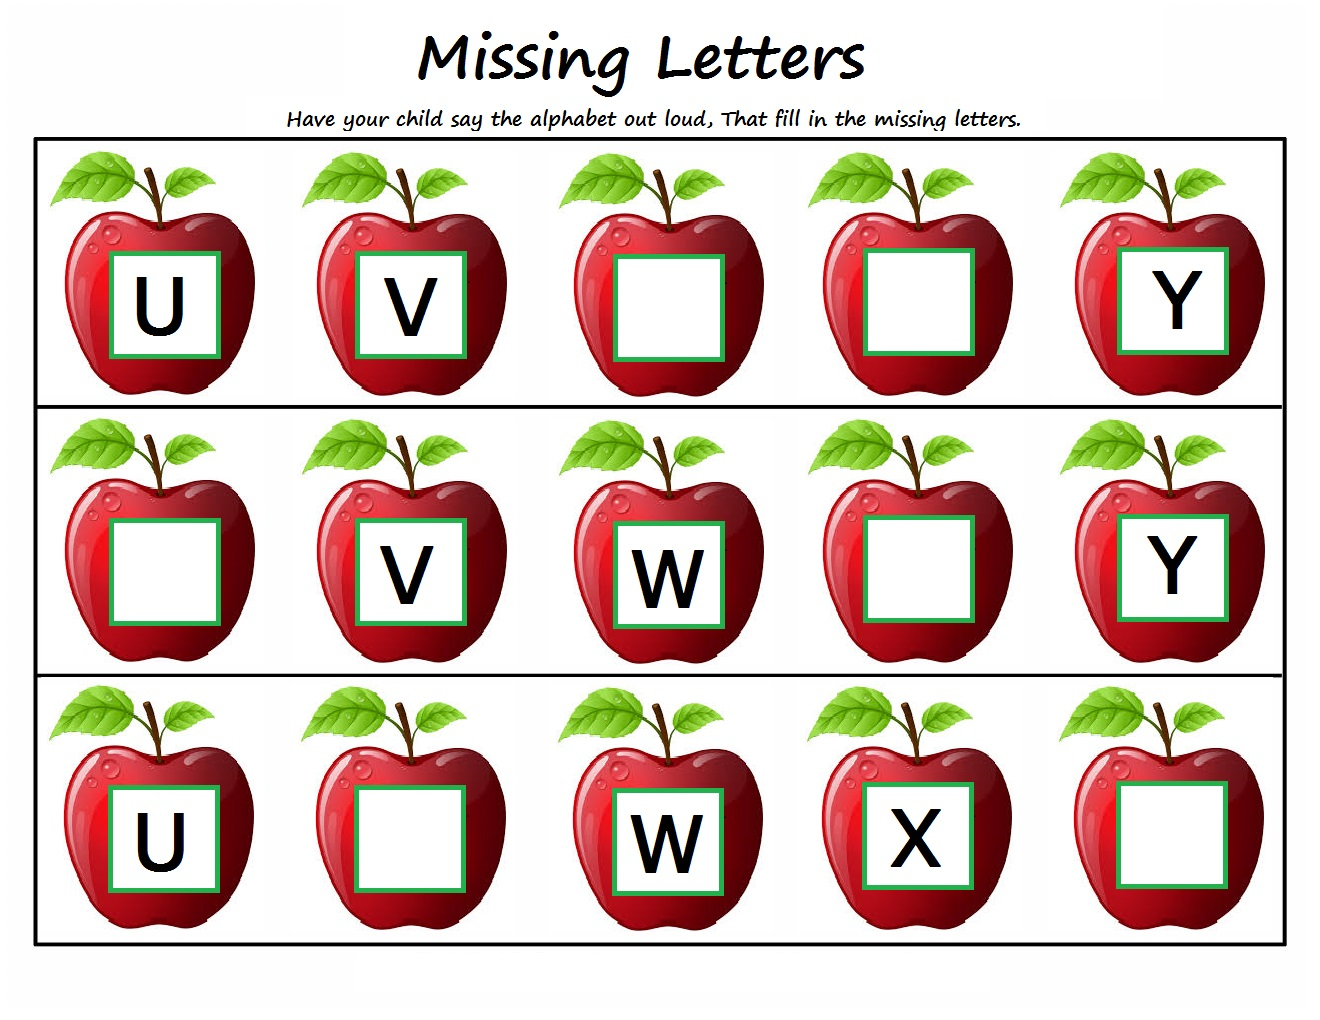 Worksheets Alphabets For Kindergarten kindergarten worksheets missing letters letters